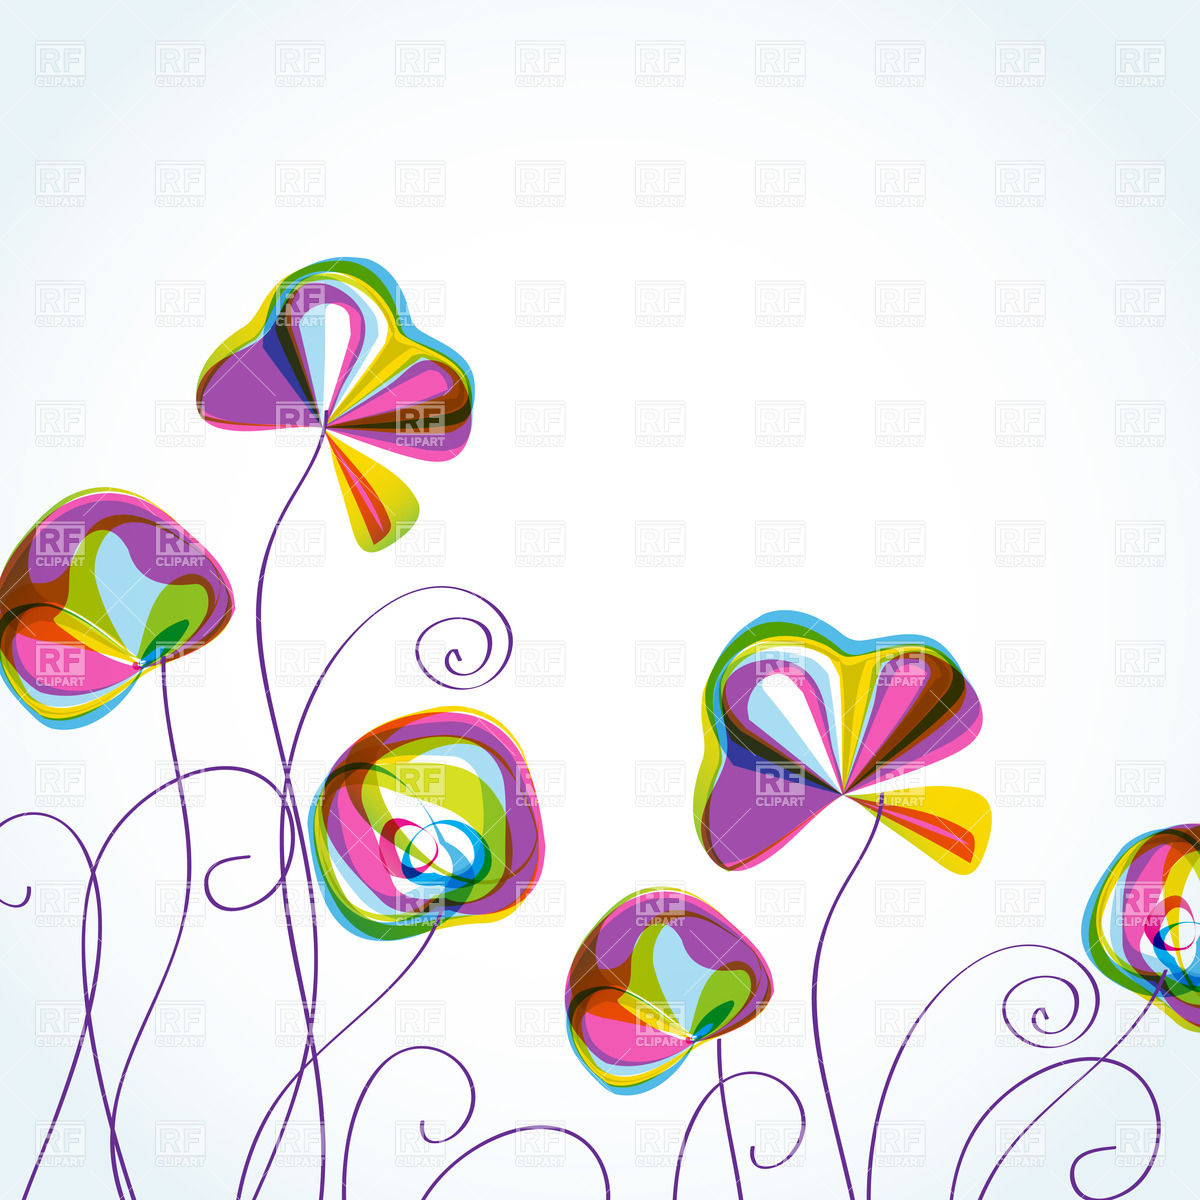 Stylized variegated flowers Vector Image #23735.